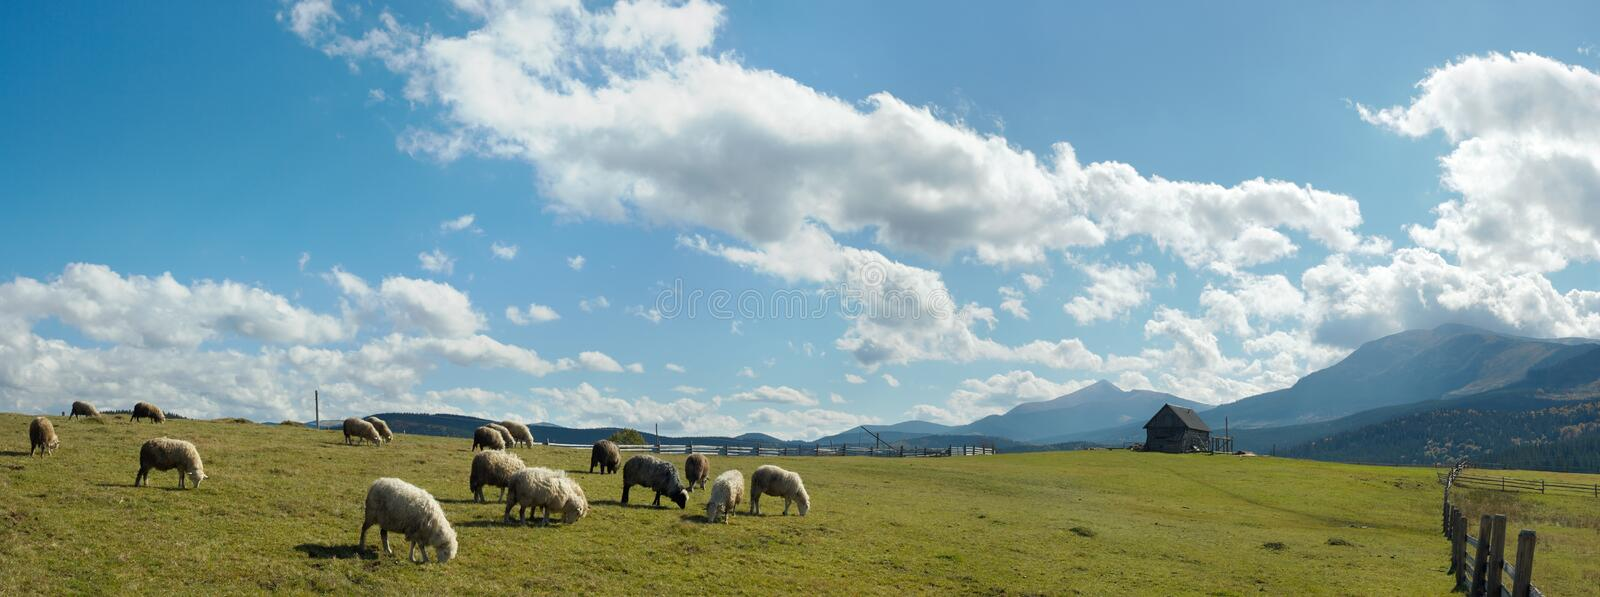 Sheep herd on plateau. Sheep herd on mountain plateau pasture (Carpathian mountain, Ukraine). In opposite sunlight direction. Five shots stitch image royalty free stock photography